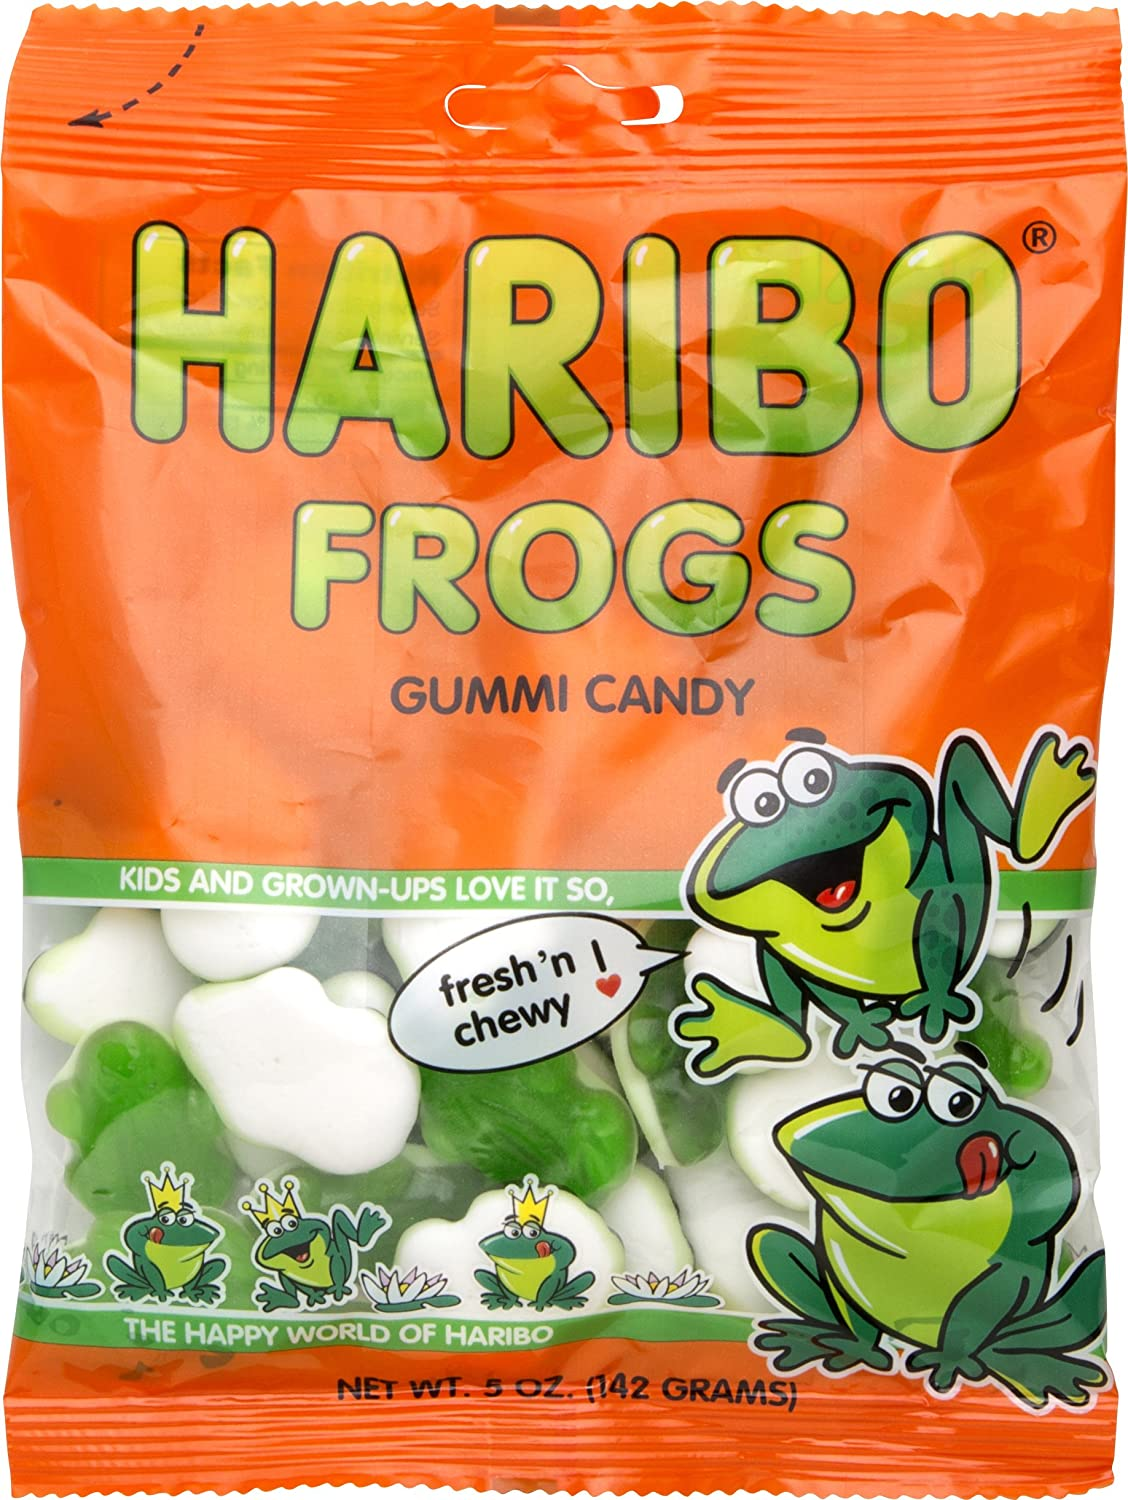 Haribo Frogs Gummi Candy, 5 oz (Pack of 3)